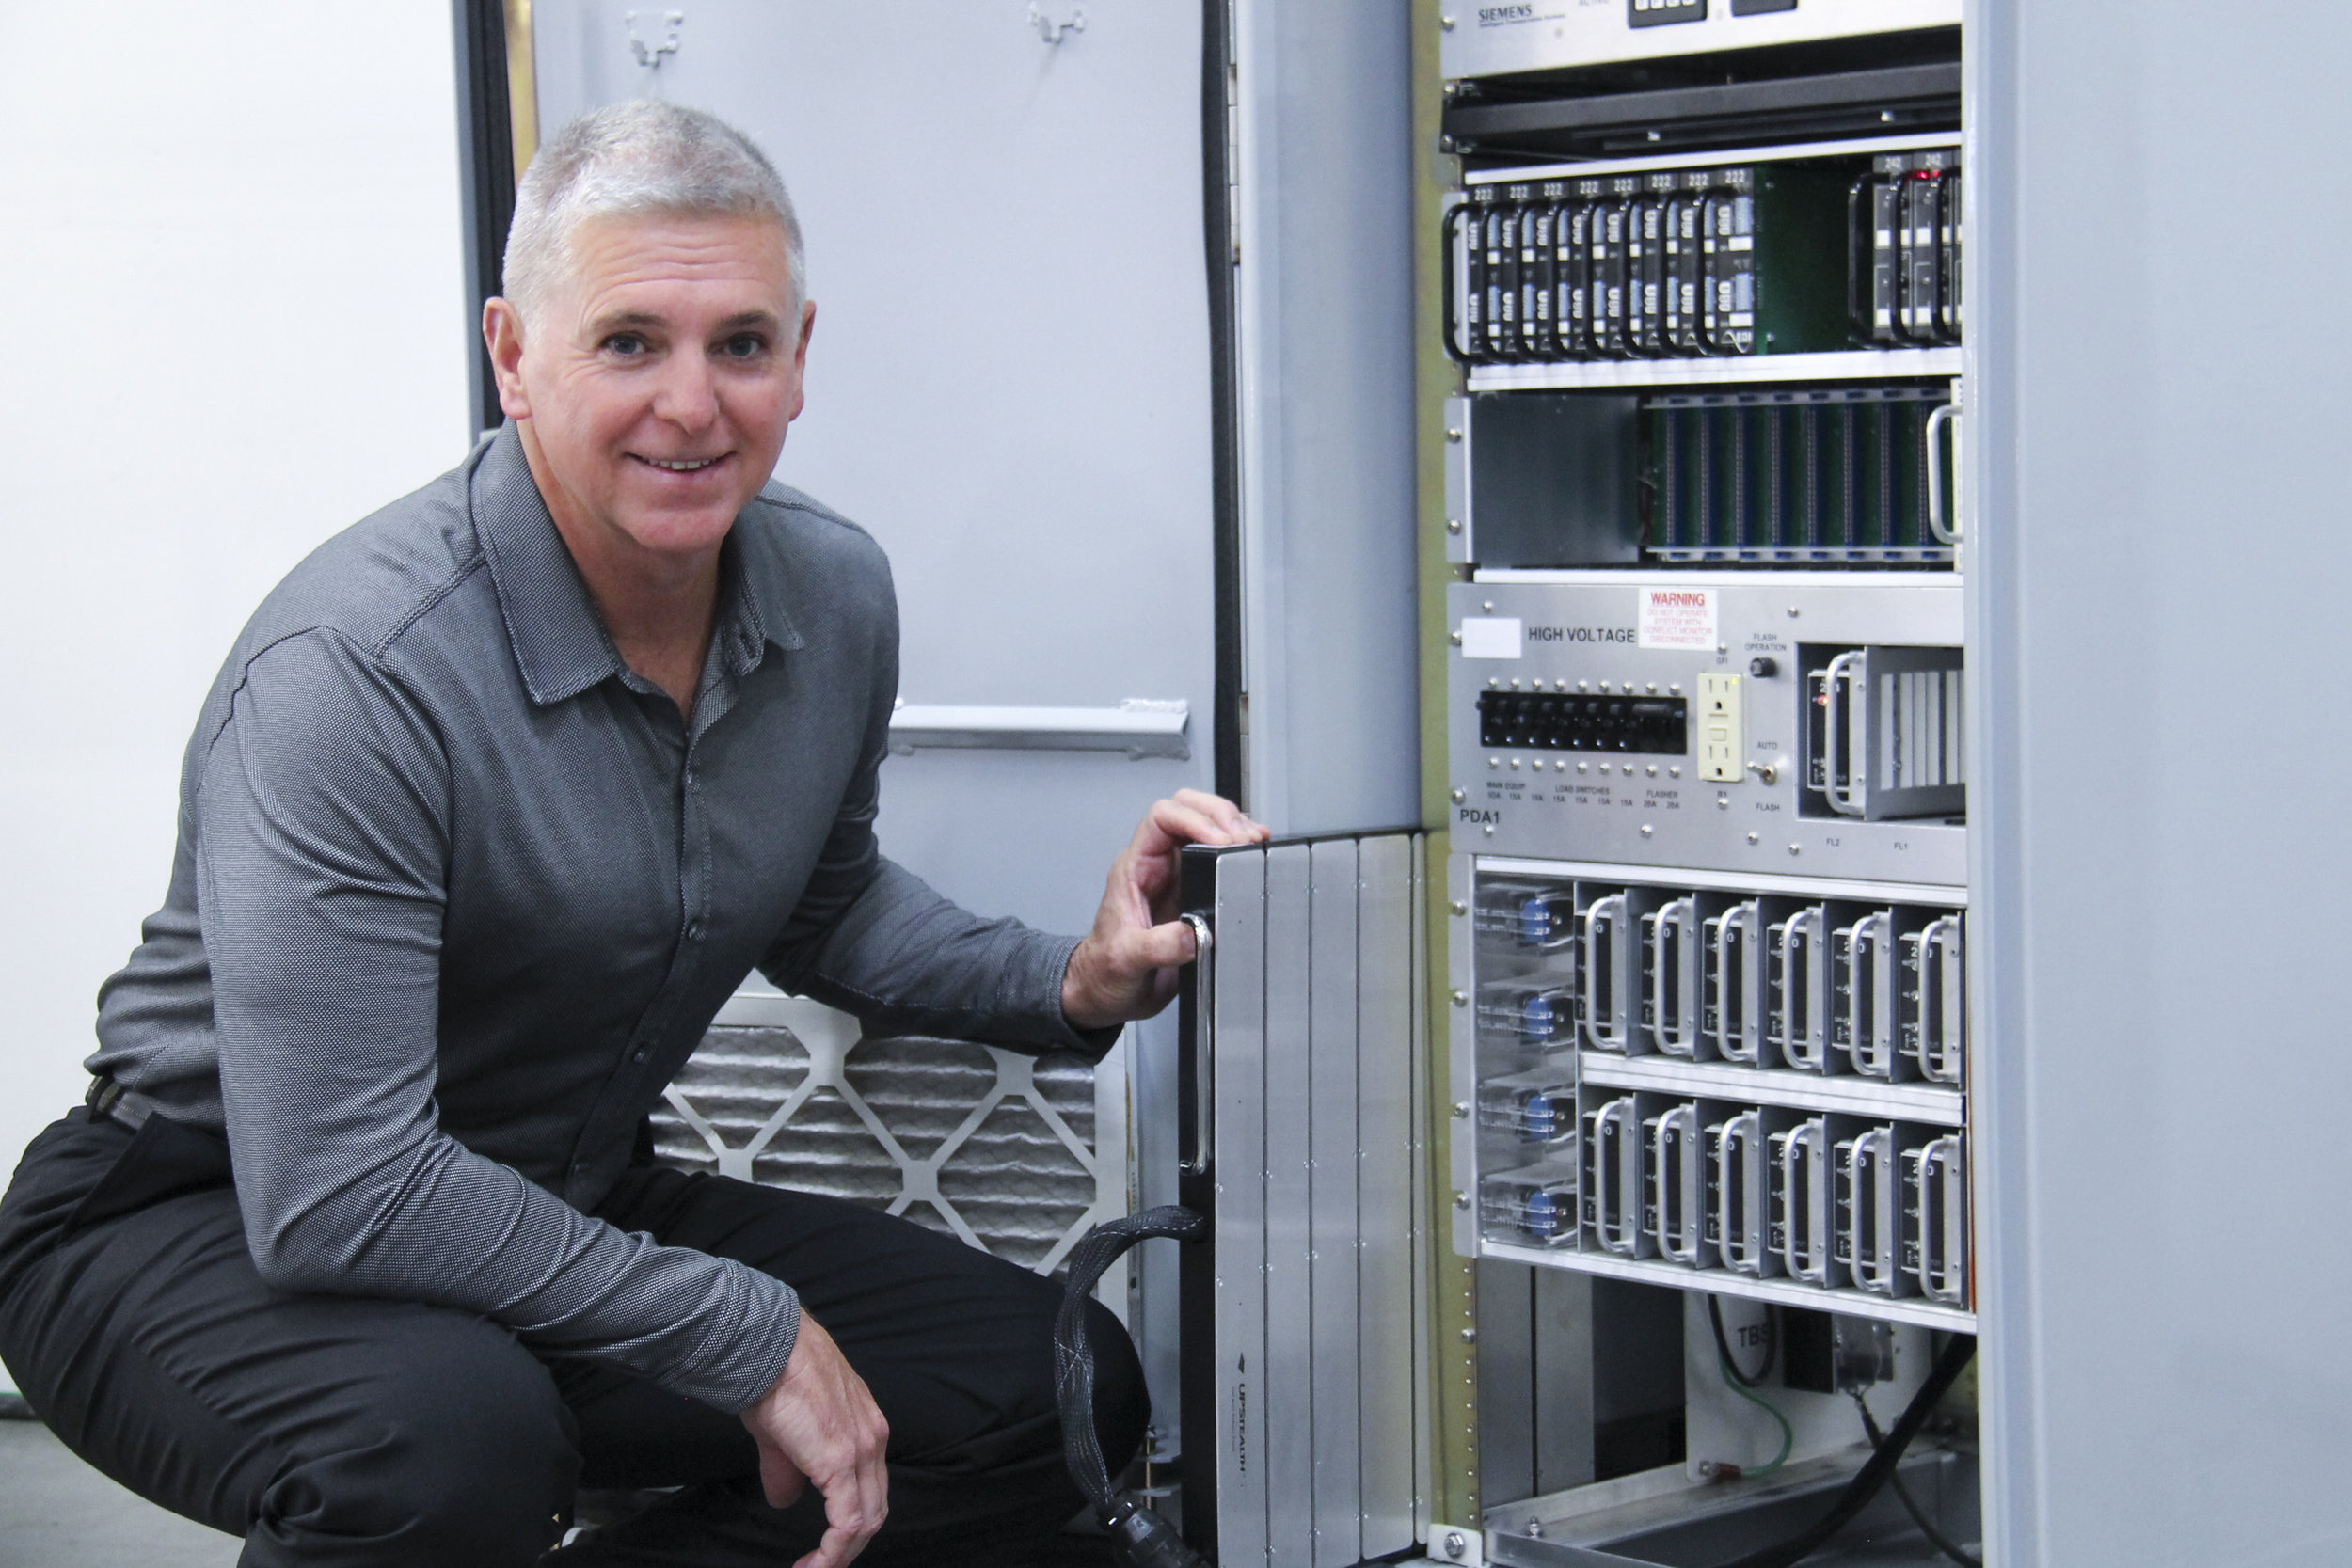 ZincFive CEO/Co-founder Tim Hysell and the UPStealth Uninterruptible Power Supply.